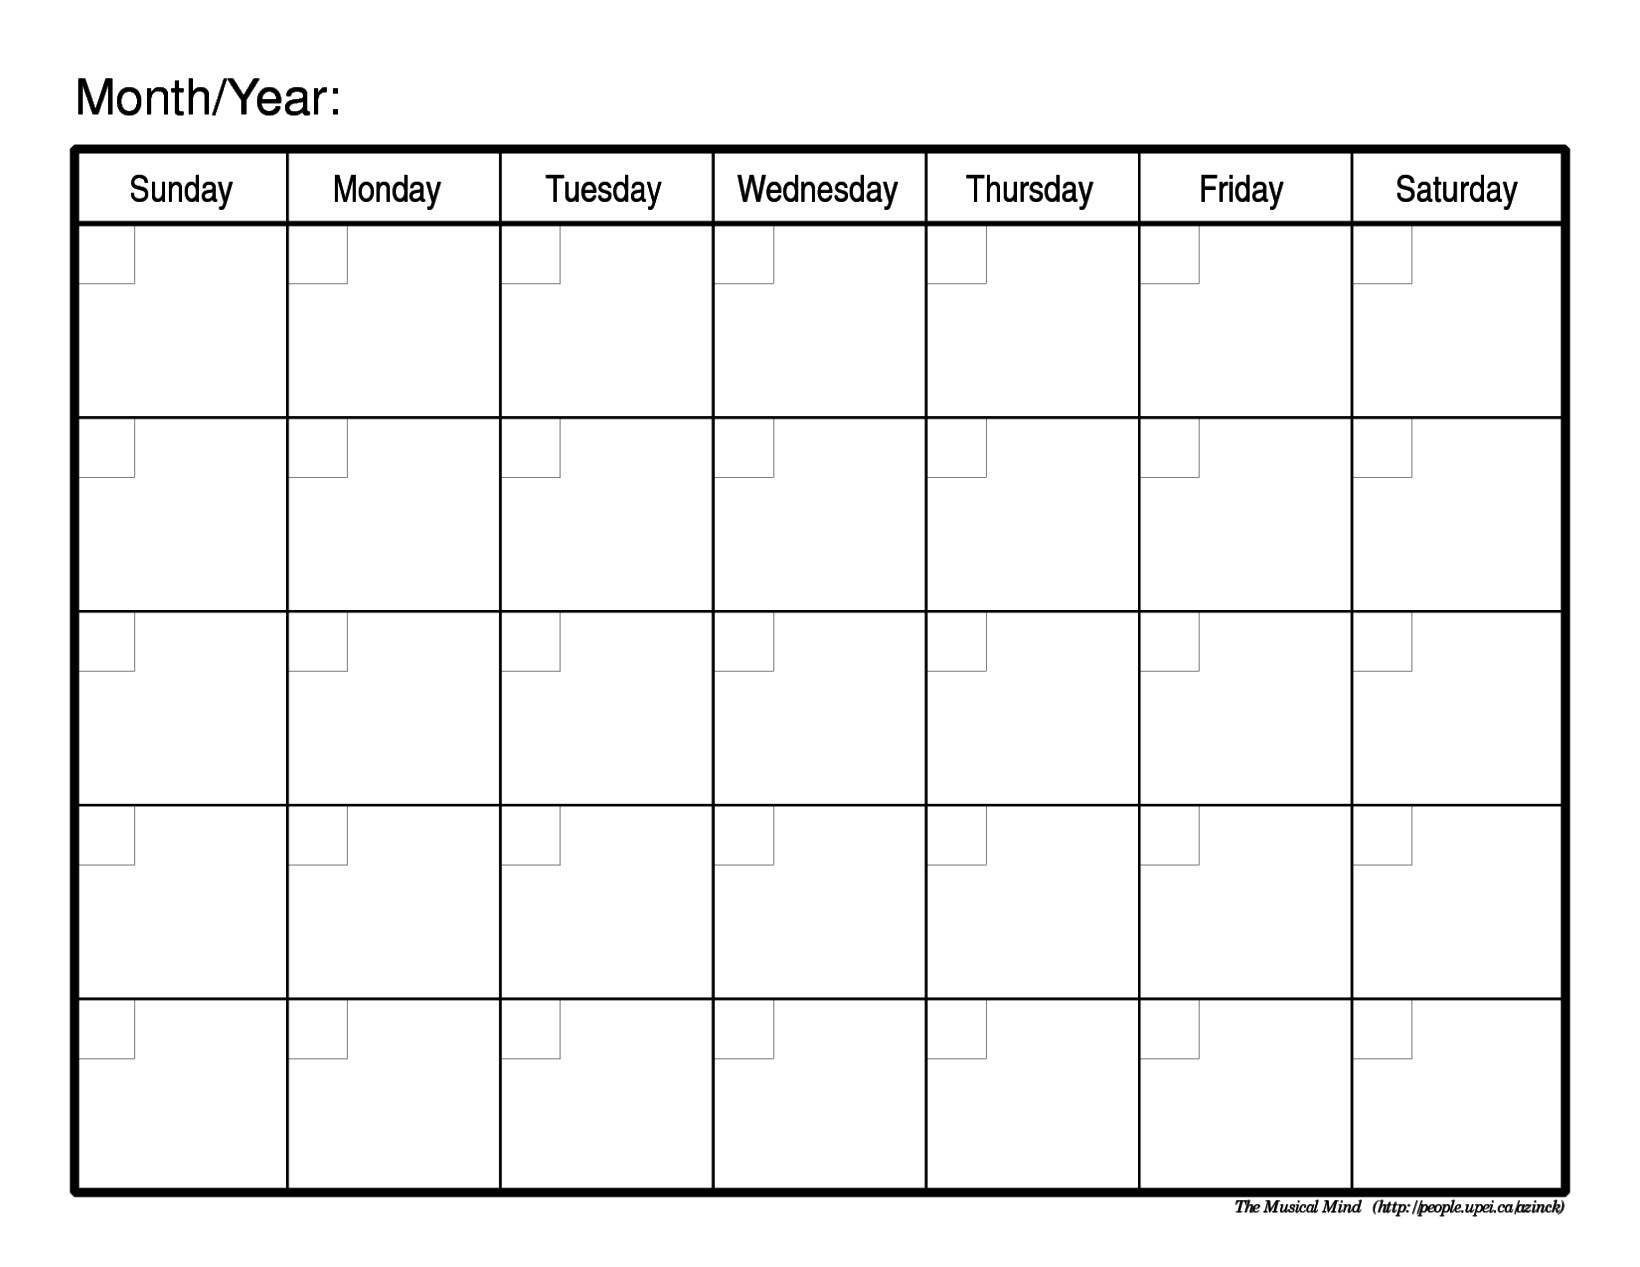 Schedule Template Free Blank Printable R Aaron The Artist